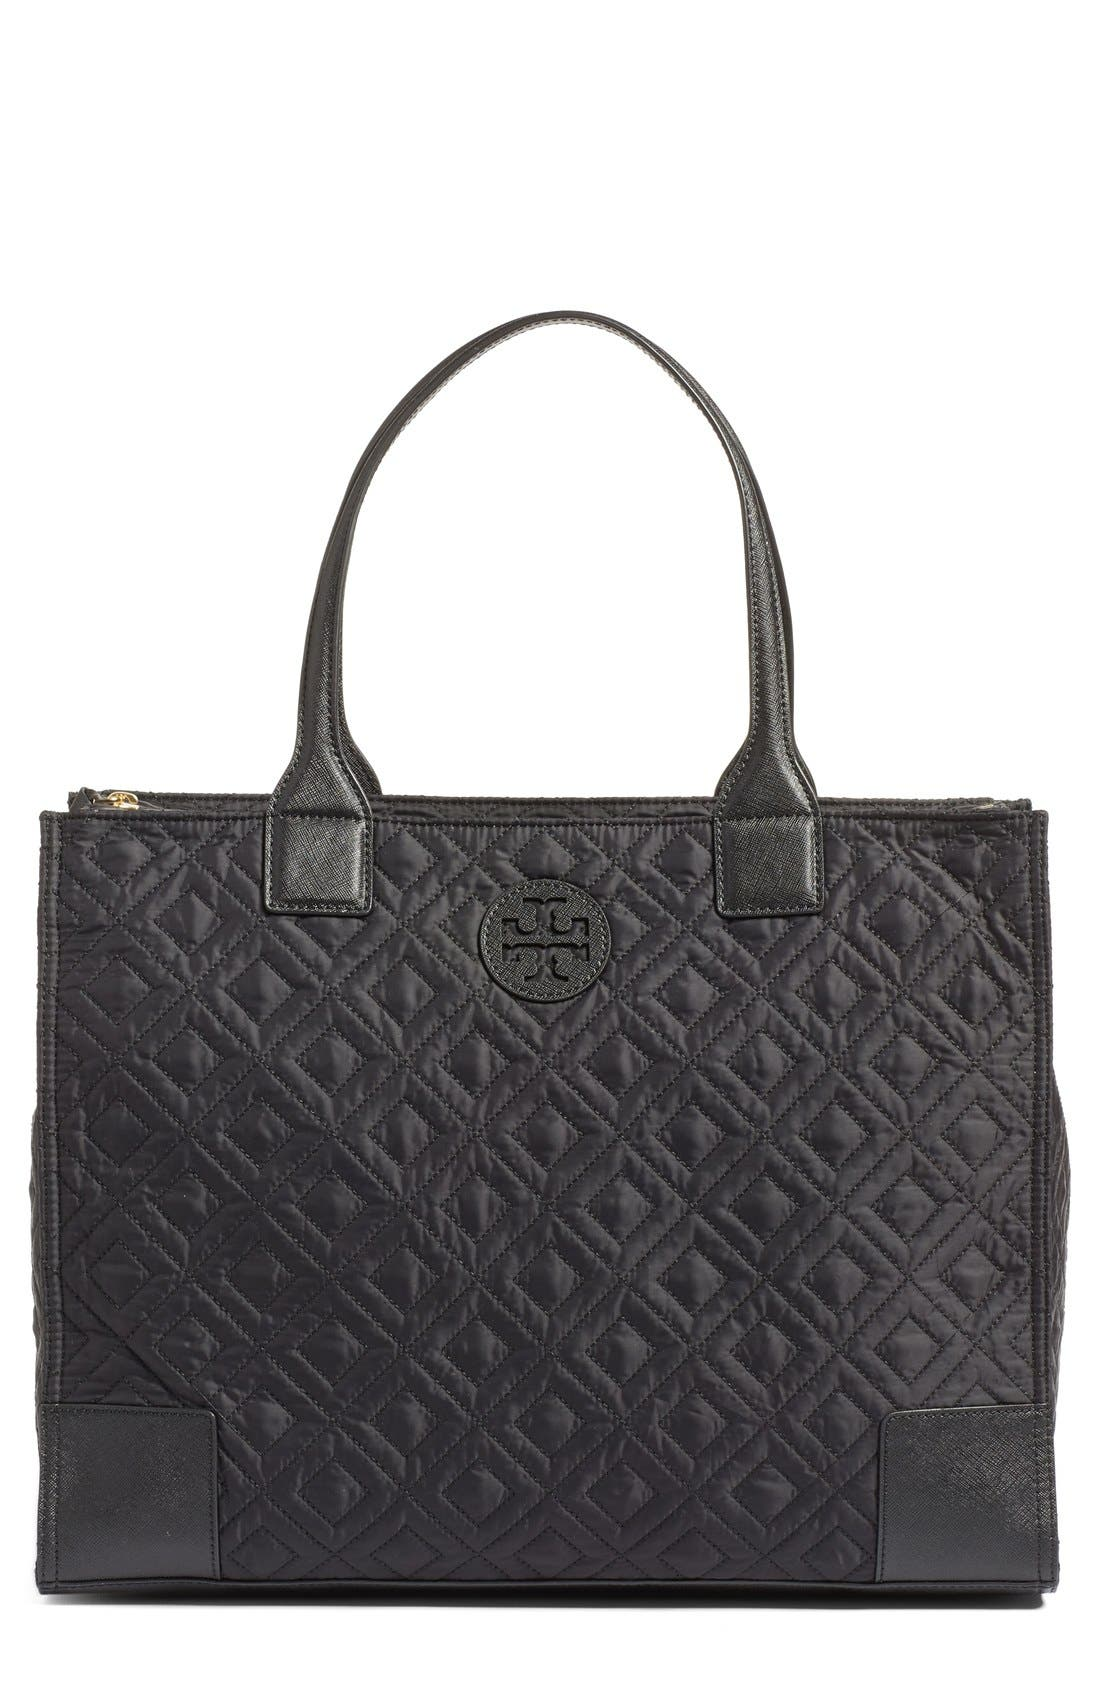 Main Image - Tory Burch 'Ella' Packable Quilted Nylon Tote